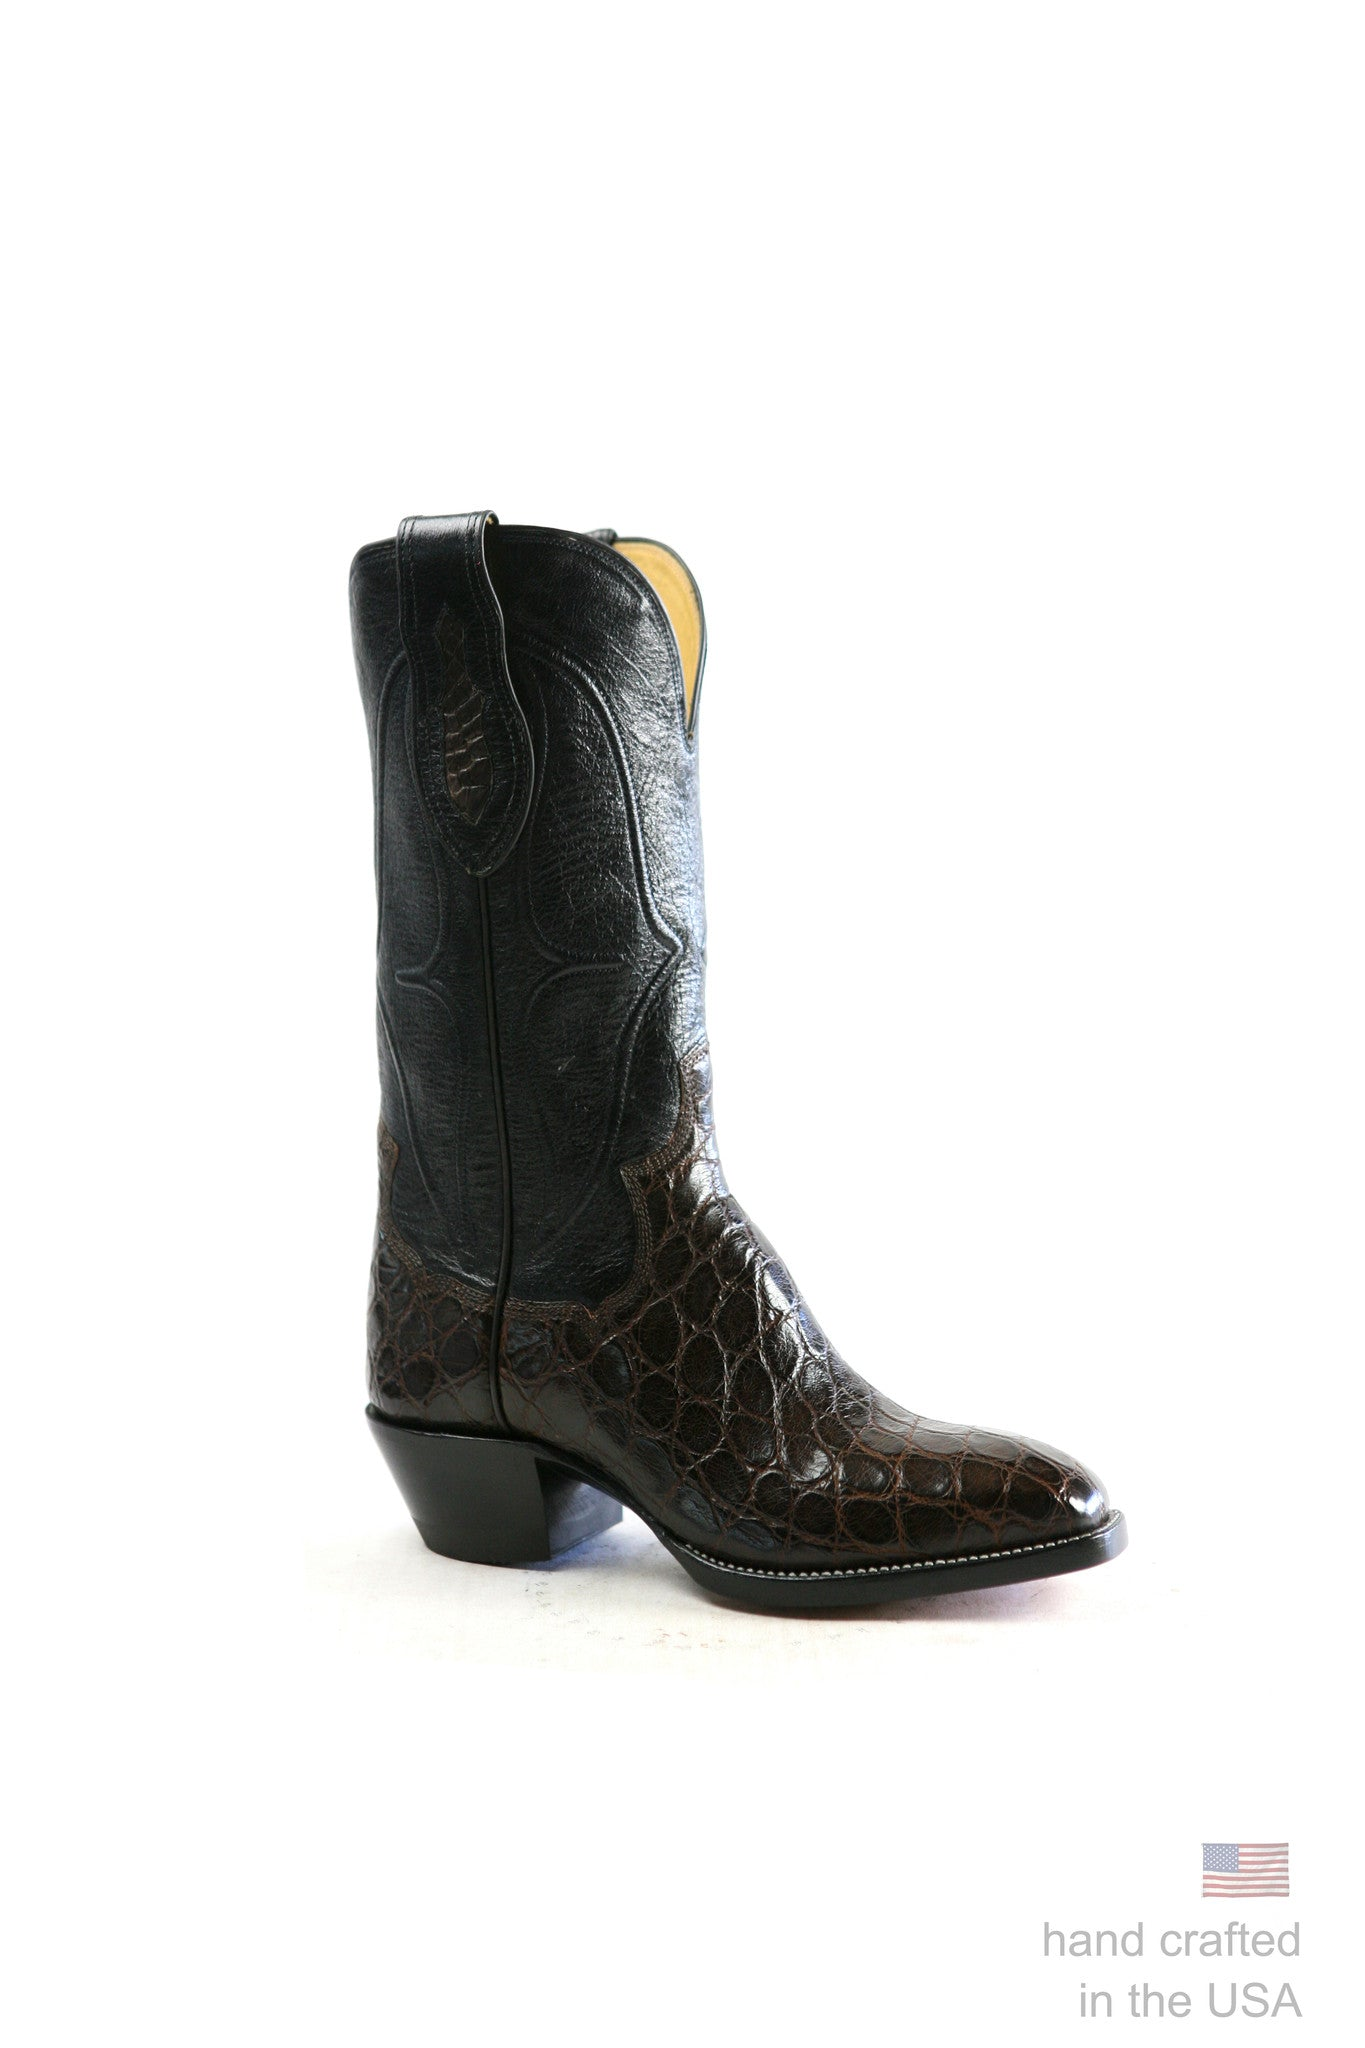 American Alligator Cowboy Boot: Size 10 D